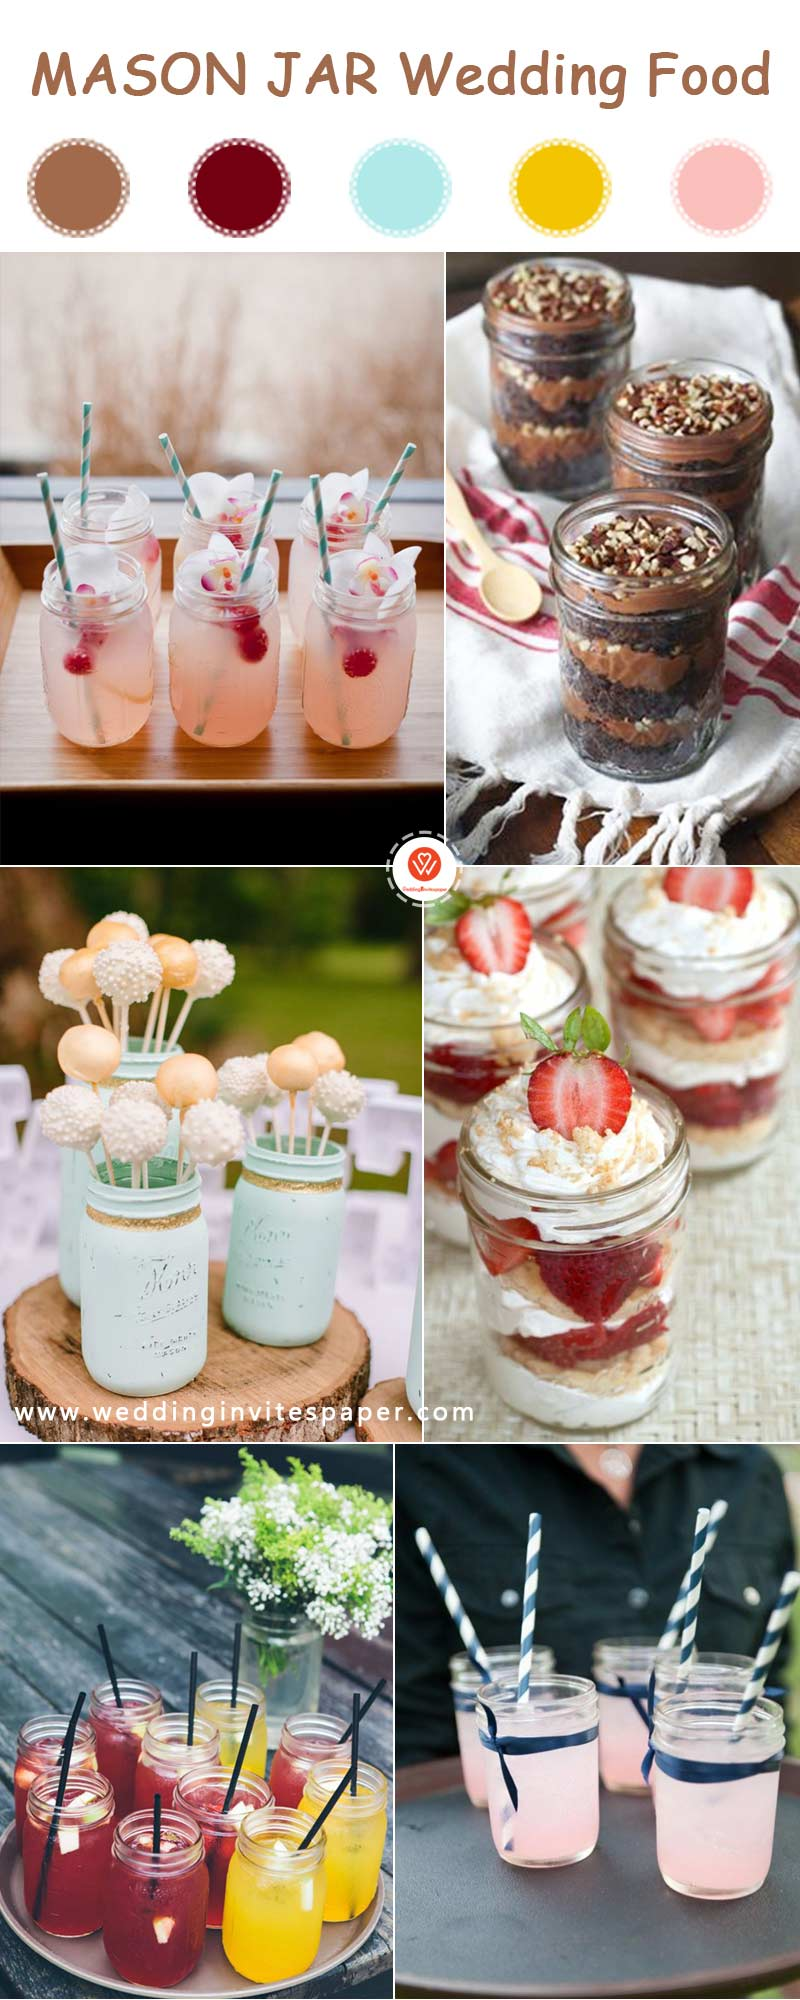 MASON-JAR-Wedding-Food-副本.jpg